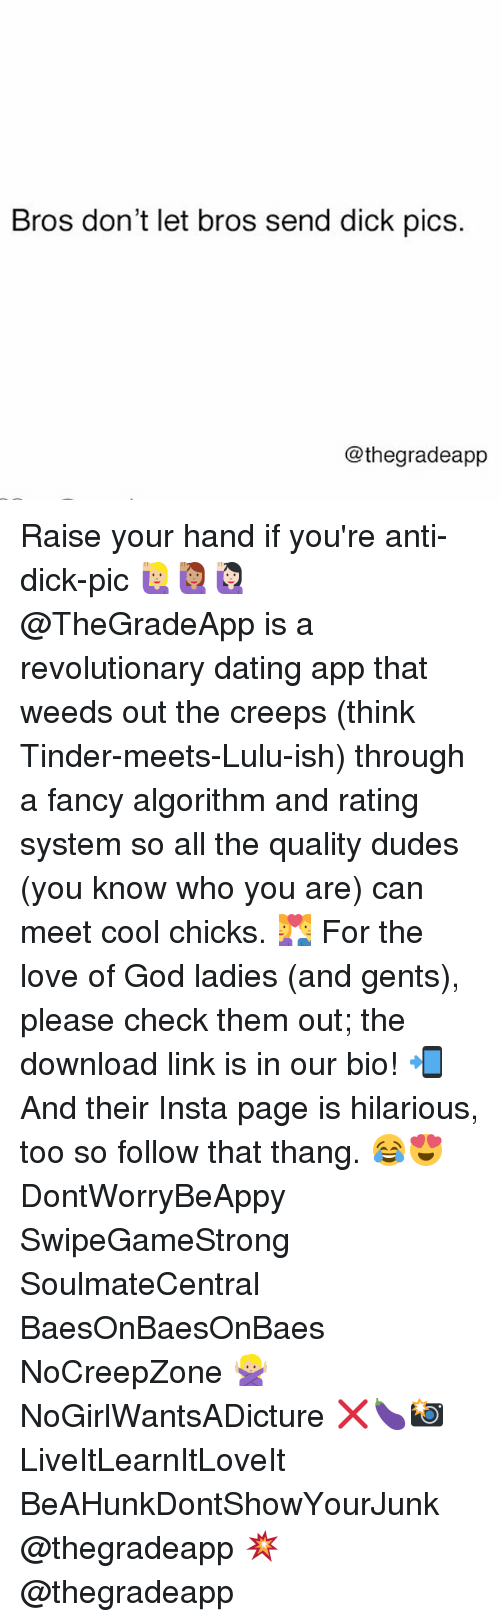 Lulu, App, and Download: Bros don't let bros send dick pics.  Cothegradeapp Raise your hand if you're anti-dick-pic 🙋🏼🙋🏽🙋🏻 @TheGradeApp is a revolutionary dating app that weeds out the creeps (think Tinder-meets-Lulu-ish) through a fancy algorithm and rating system so all the quality dudes (you know who you are) can meet cool chicks. 💑 For the love of God ladies (and gents), please check them out; the download link is in our bio! 📲 And their Insta page is hilarious, too so follow that thang. 😂😍 DontWorryBeAppy SwipeGameStrong SoulmateCentral BaesOnBaesOnBaes NoCreepZone 🙅🏼 NoGirlWantsADicture ❌🍆📸 LiveItLearnItLoveIt BeAHunkDontShowYourJunk @thegradeapp 💥 @thegradeapp